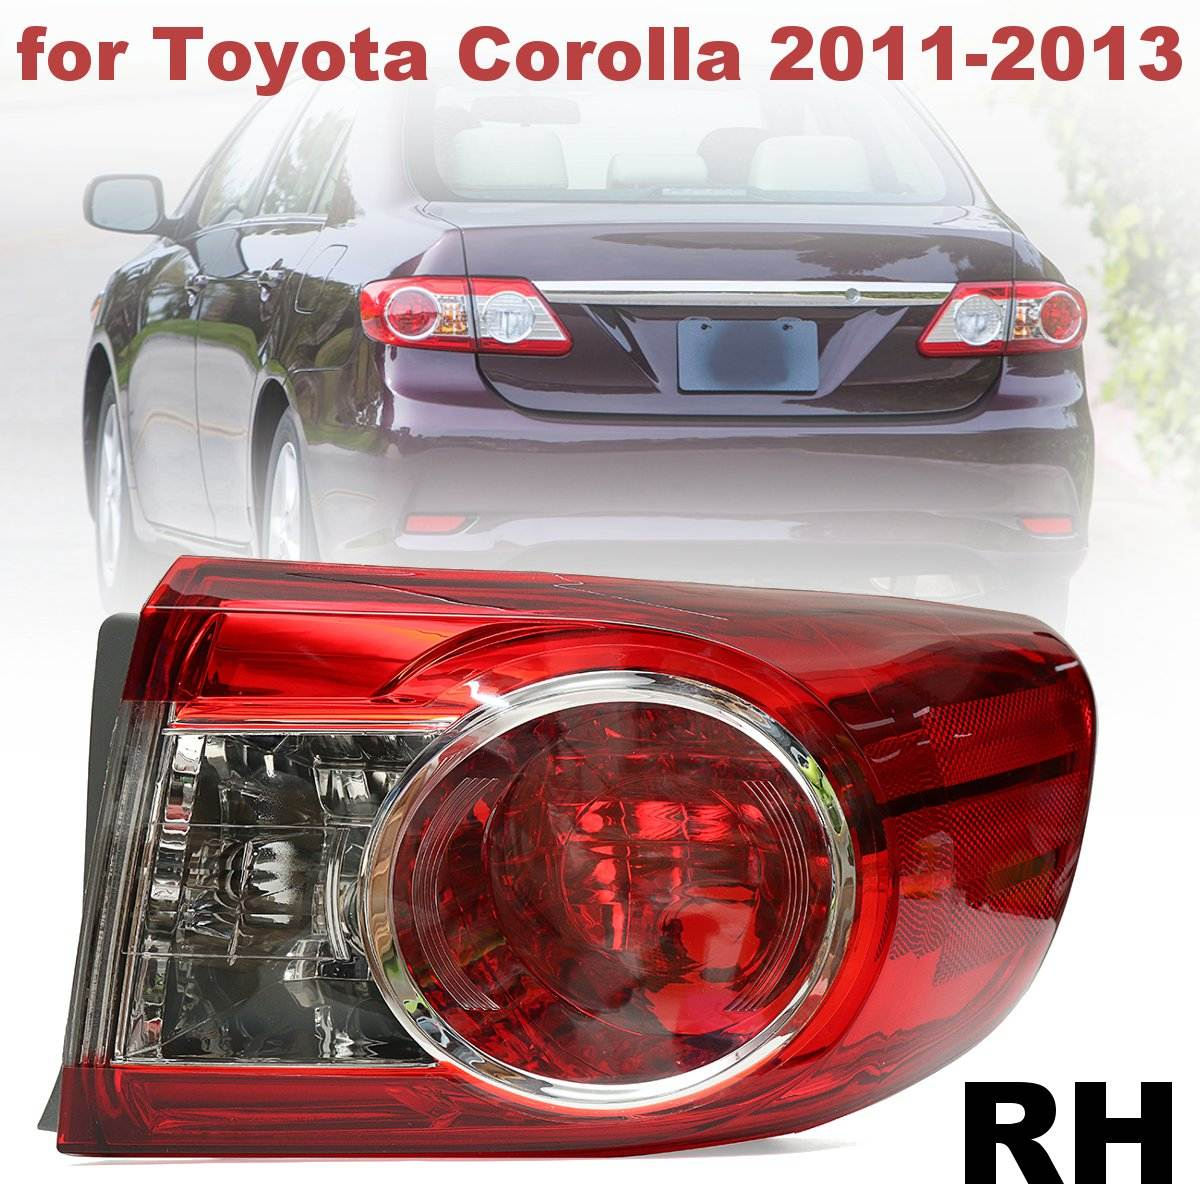 #TO2804111 #81560-02580 PMMA Red Rear Right Side Tail Light Brake Lamp for Toyota Corolla 2011 2012 2013 free shipping 2pc hexagon pattern abstract geometric body rear tail side graphic vinyl for toyota hilux vigo 2011 decals